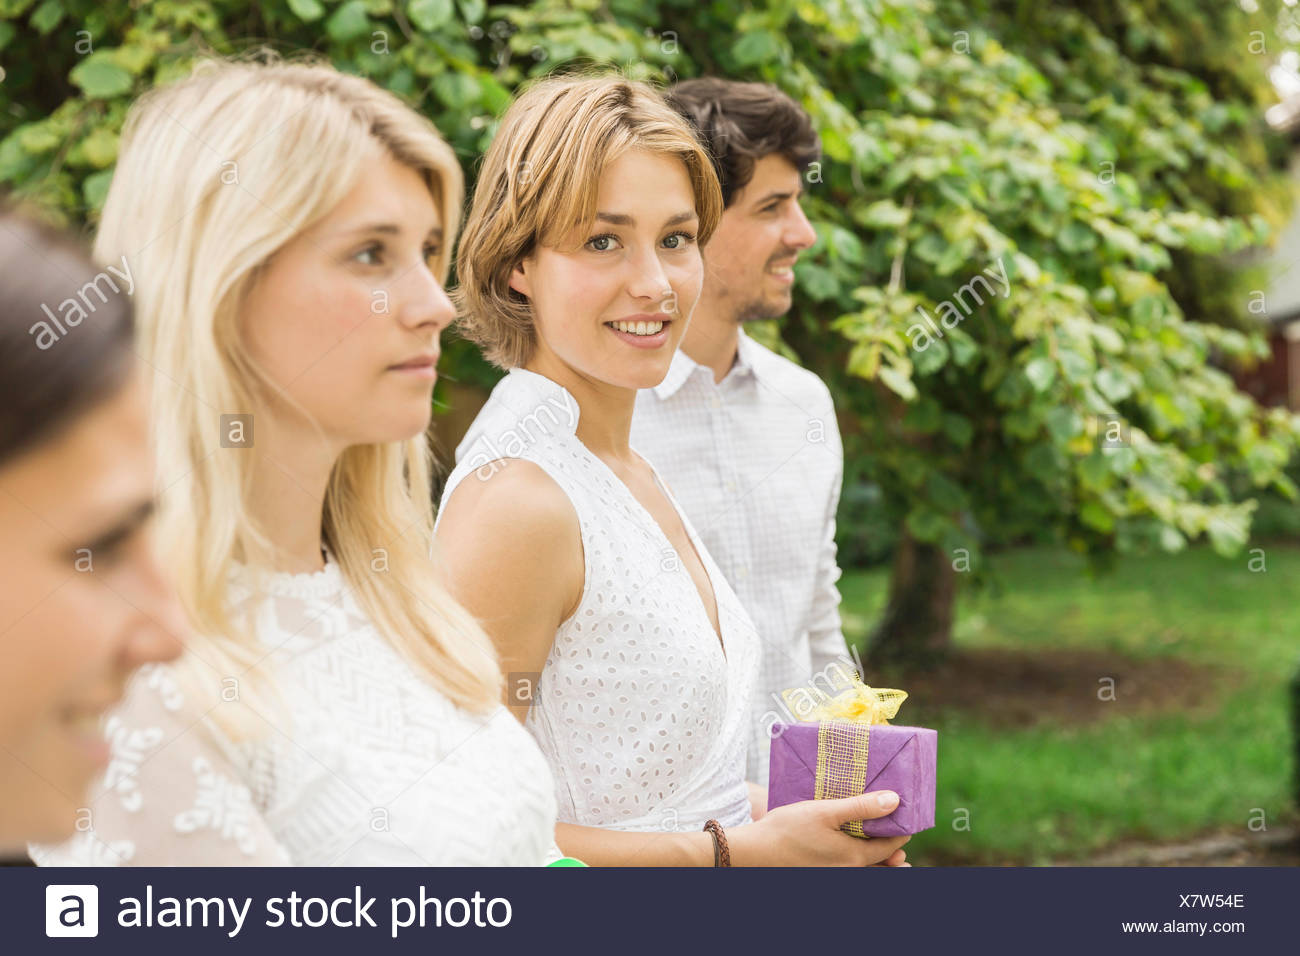 Portrait Of Young Man And Three Women Holding Birthday Gift In Garden